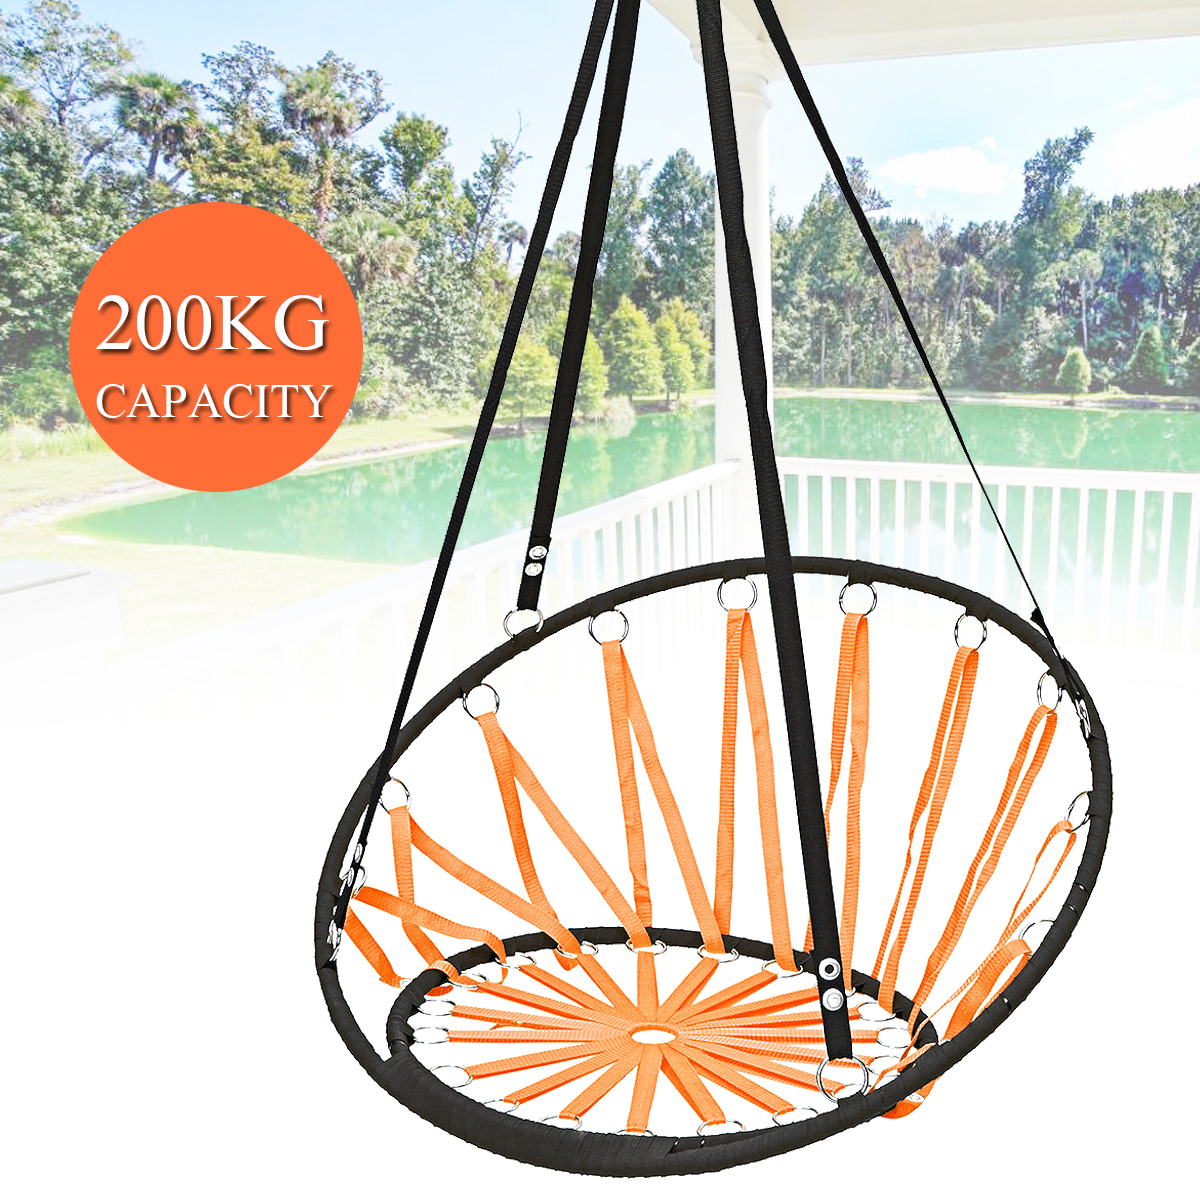 Nordic Outdoor Indoor Cotton Rope Hammock Chair Swinging Hanging Chair Garden Air Porch Swing Chair Dormitory Camping Seat hammock light outdoor garden hammock porch swing chair